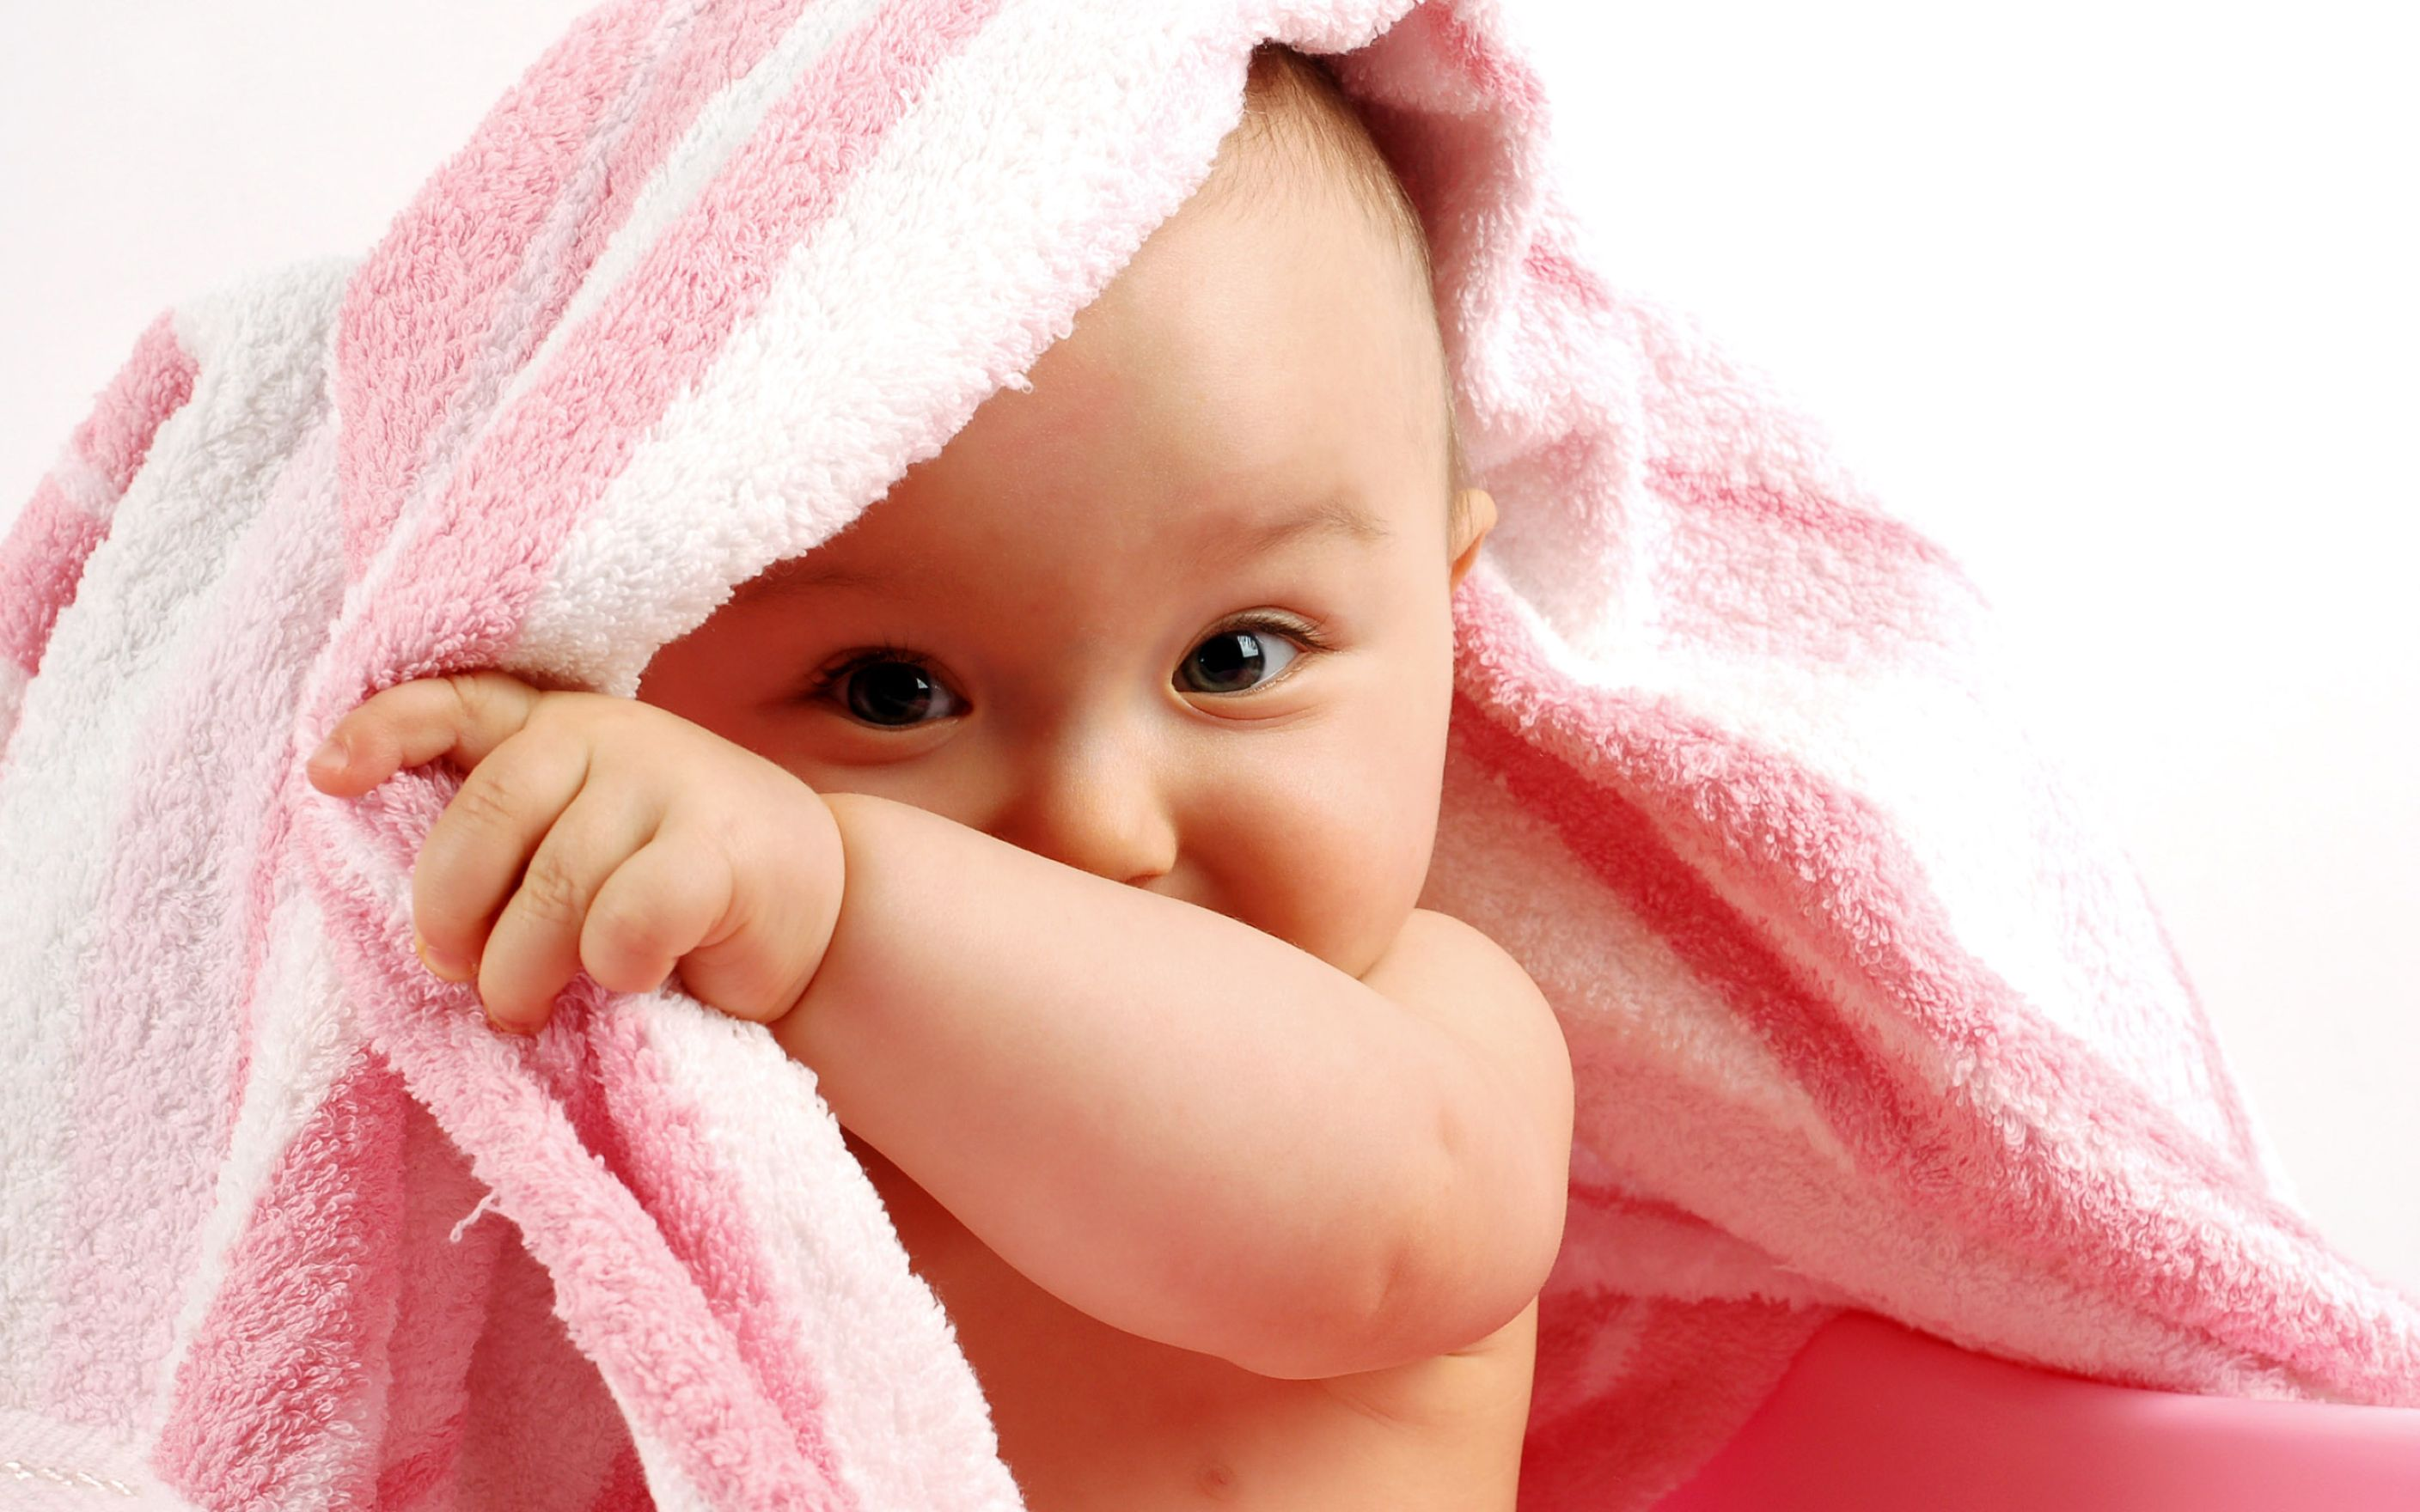 cute baby boy 2 wide wallpaper: desktop hd wallpaper - download free